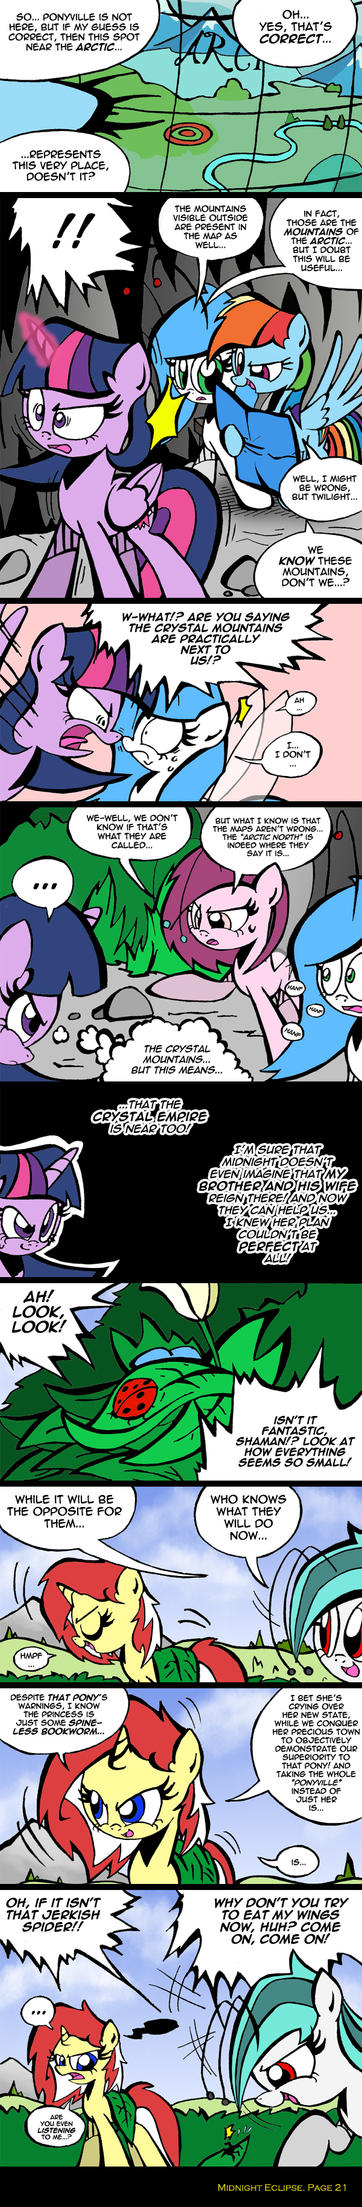 Midnight Eclipse - Page 21 by labba94